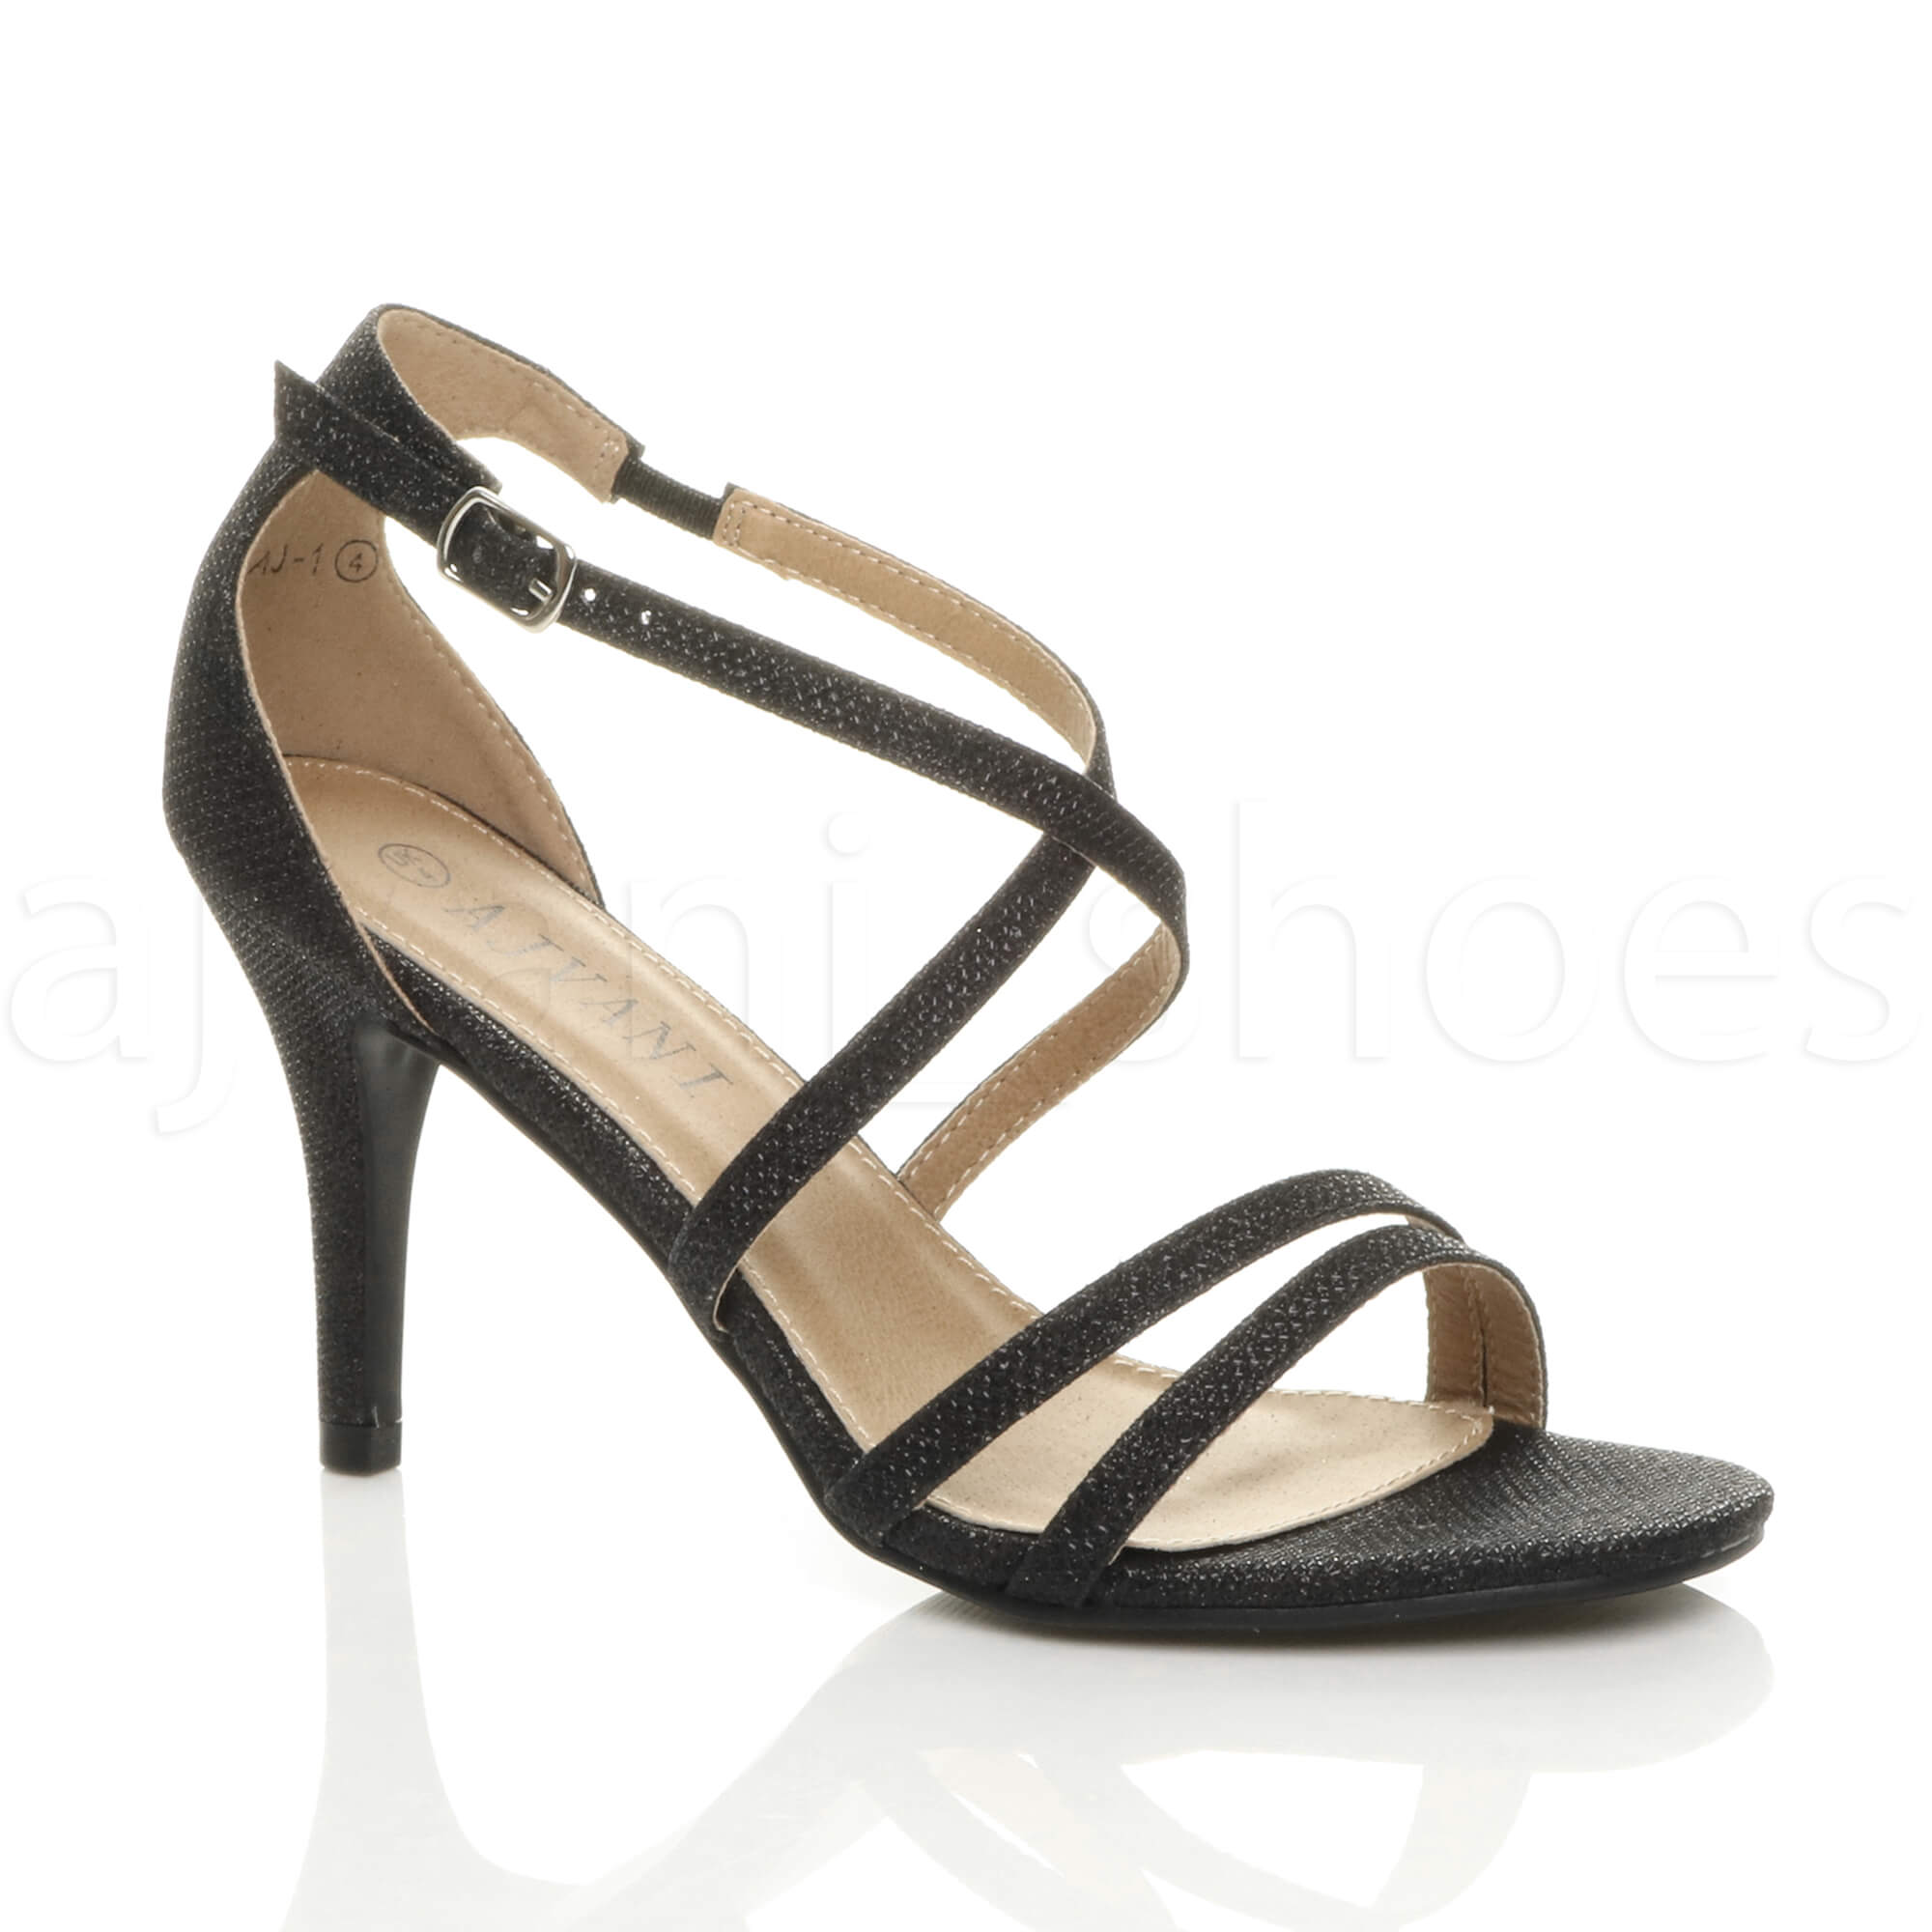 WOMENS-LADIES-MID-HIGH-HEEL-STRAPPY-CROSSOVER-WEDDING-PROM-SANDALS-SHOES-SIZE thumbnail 23